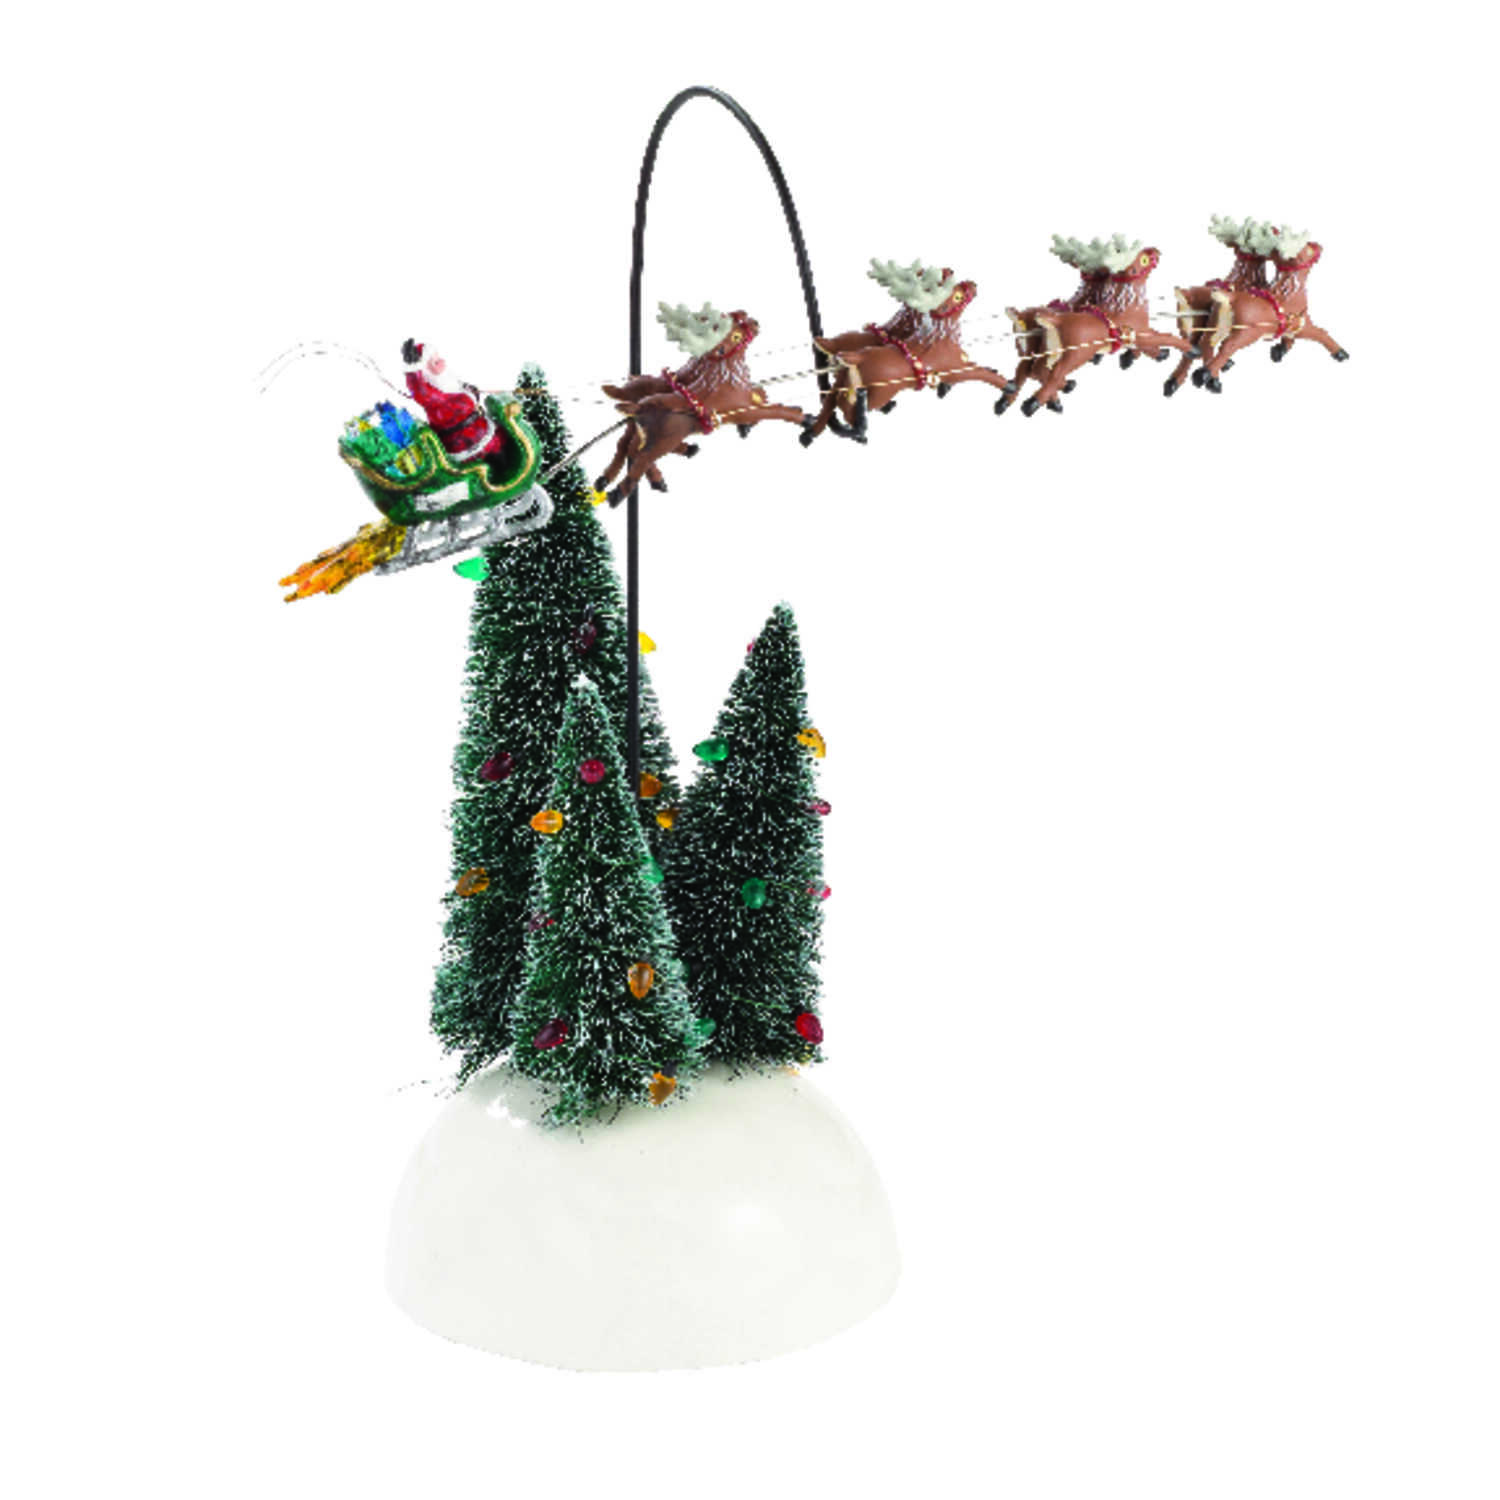 Department 56  Christmas Vacation Flaming Sleigh  Village Accessory  Porcelain  1 each Multicolored